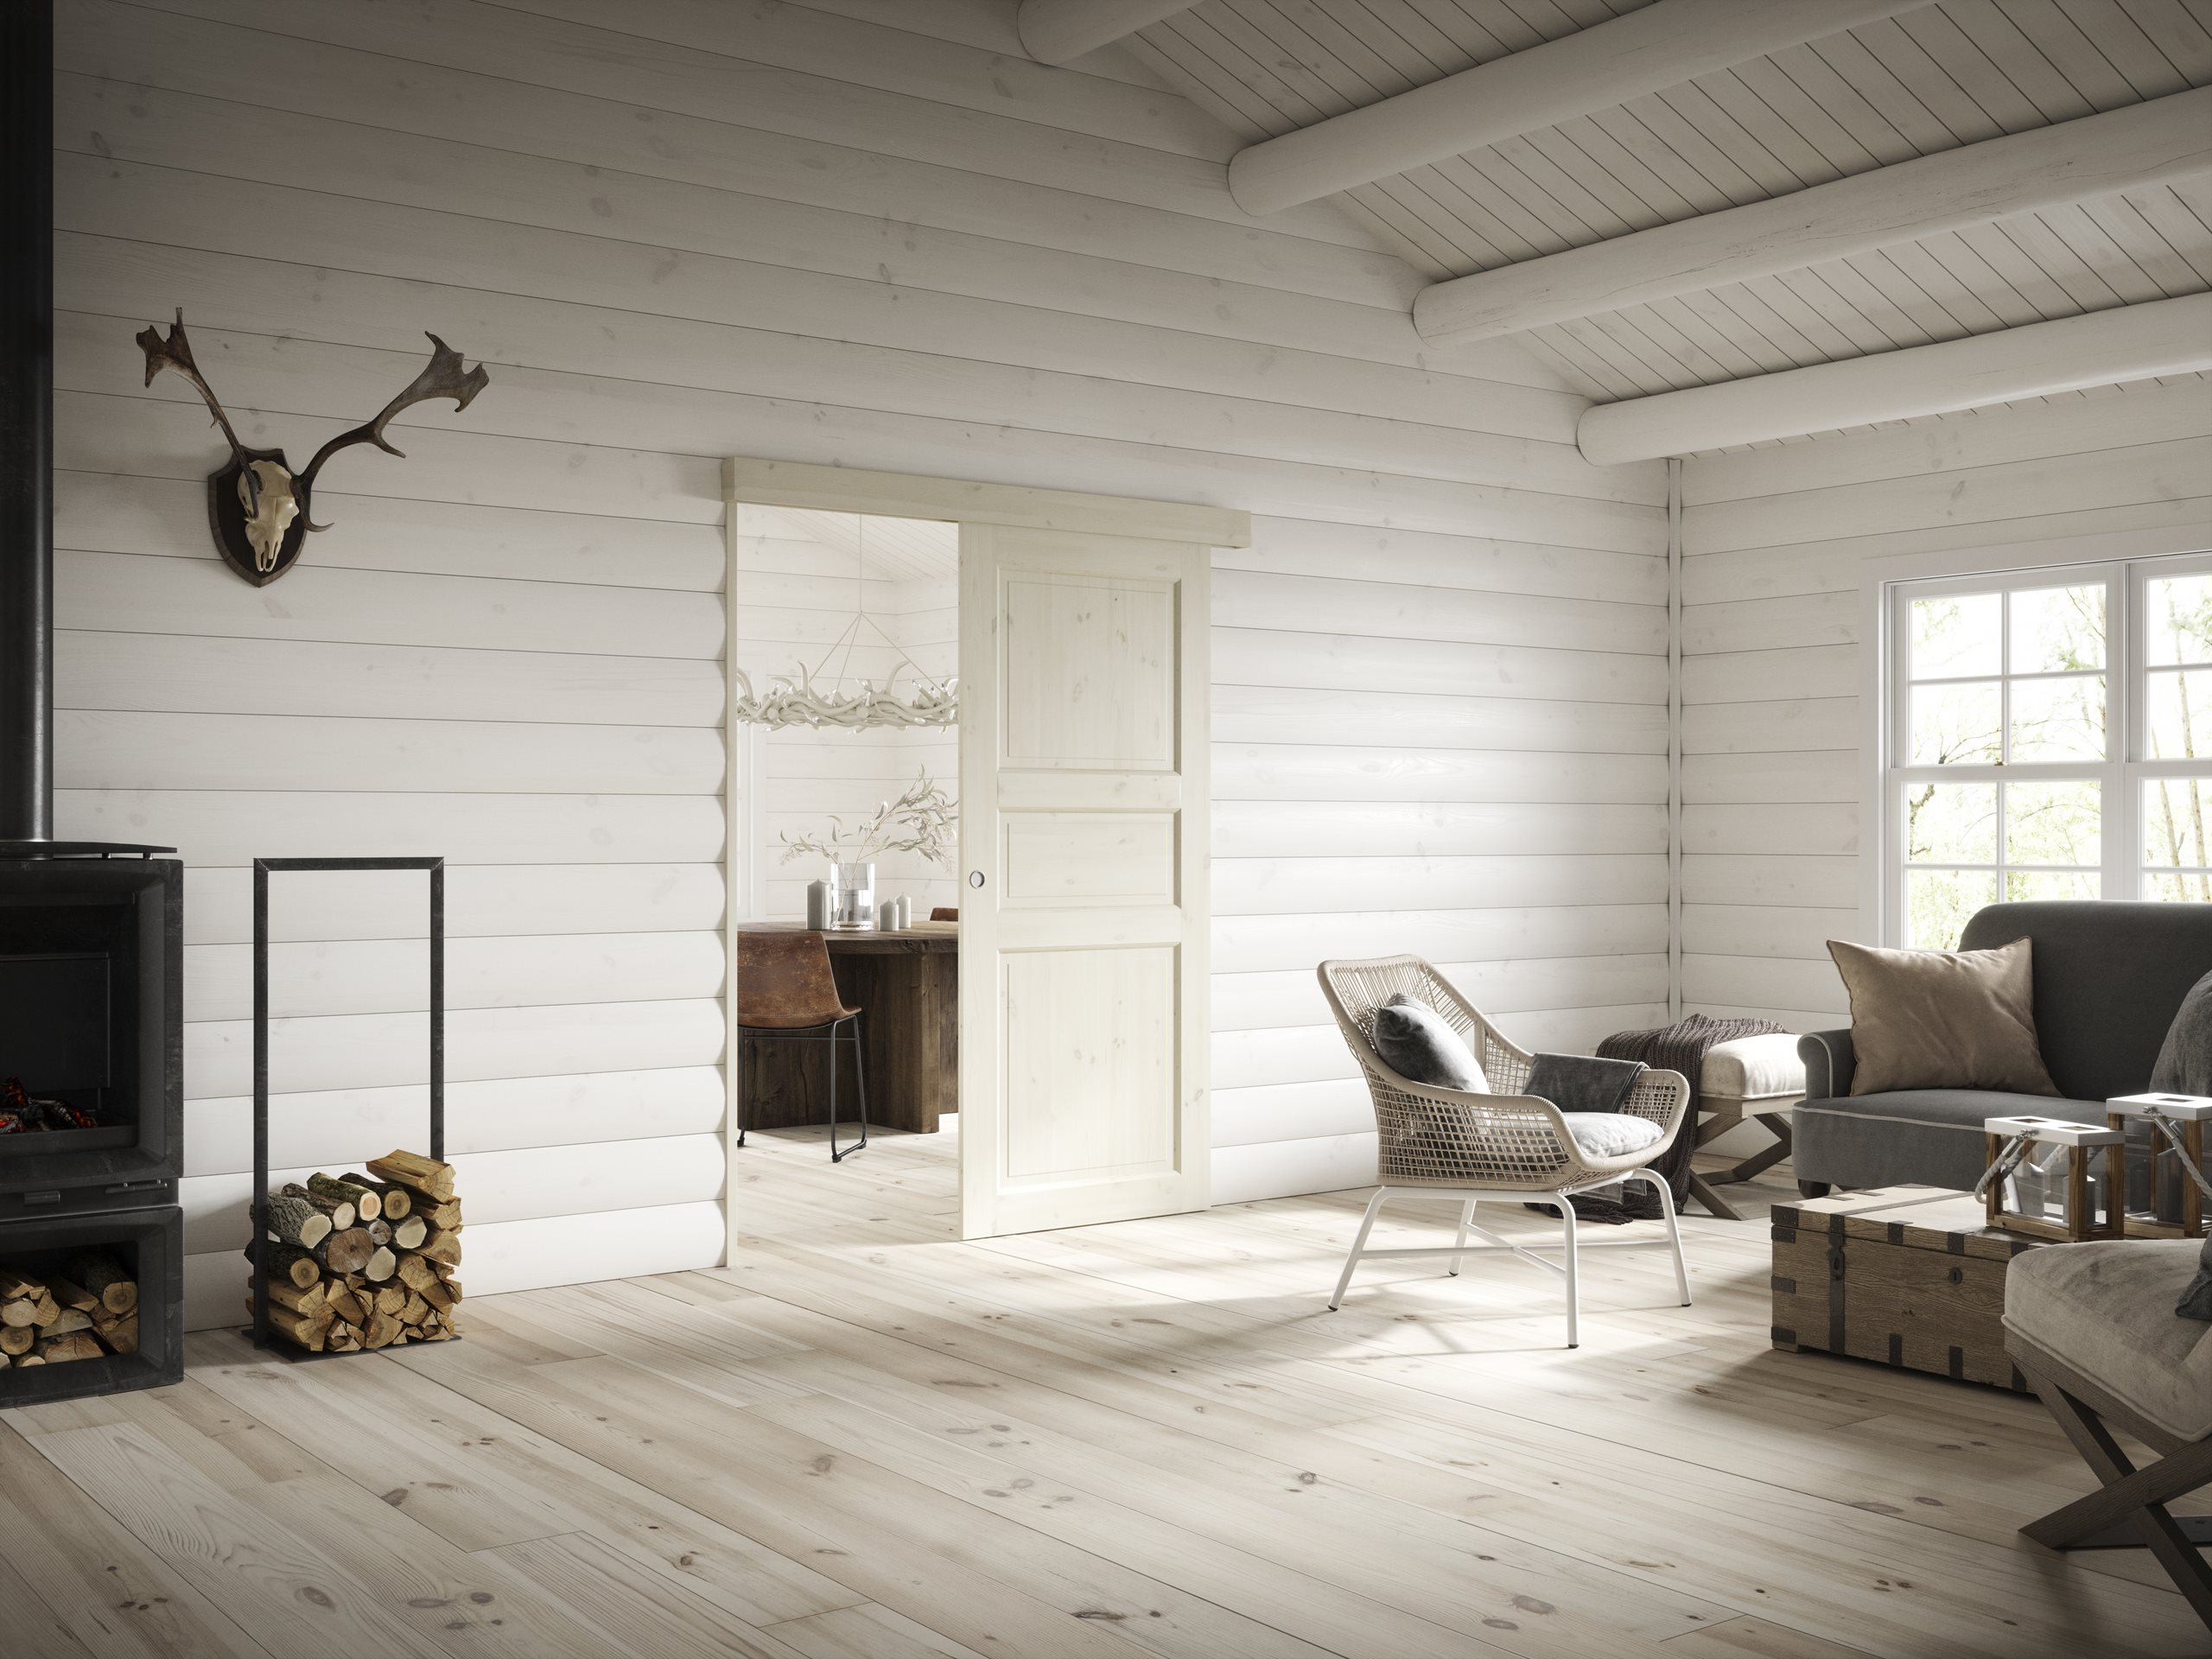 36-Surrounding-Image-Sliding-Wood-pelmet-with-Tradition03-Pine-white